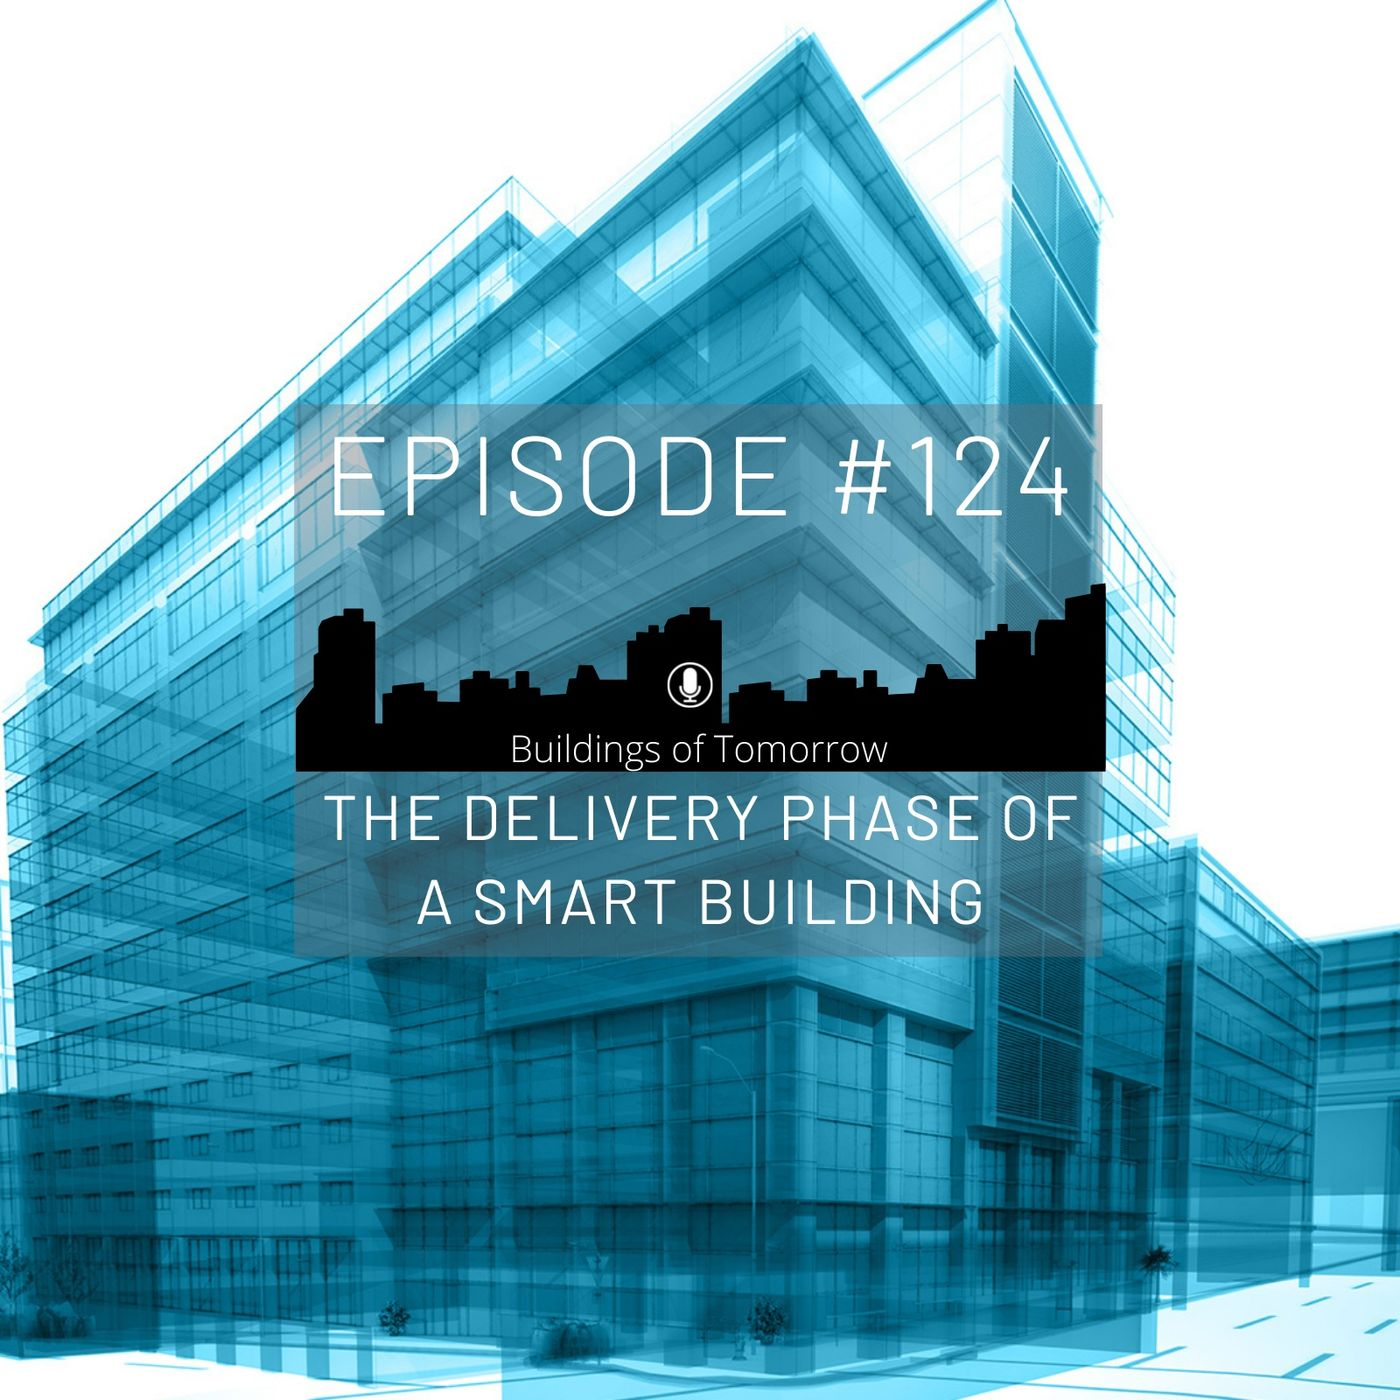 #124 The Delivery phase of a Smart Building